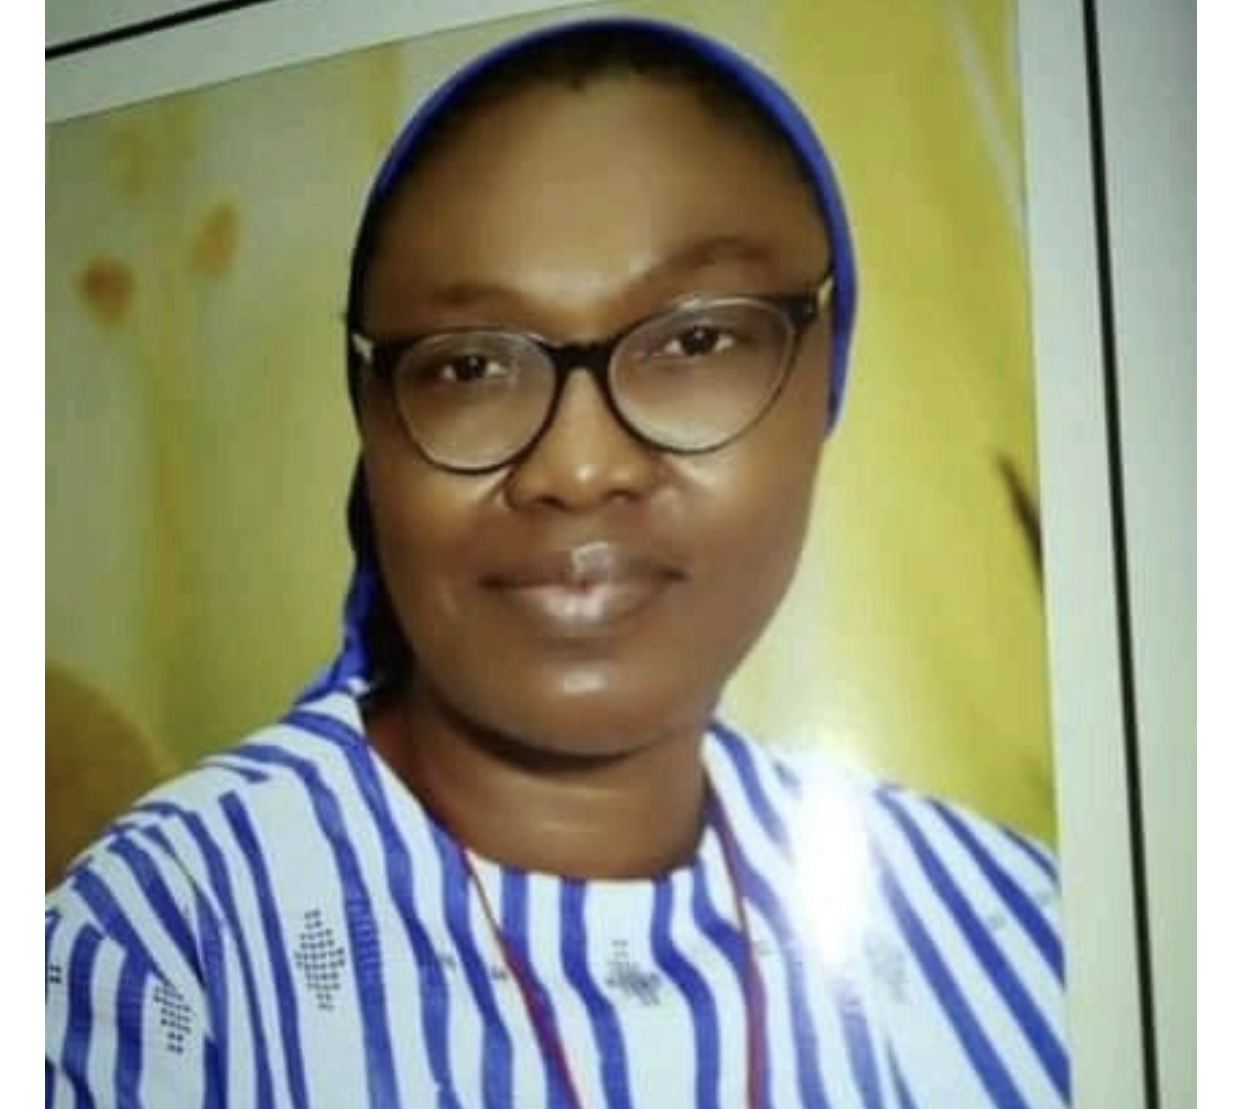 ABULE ADO GAS EXPLOSION: PRINCIPAL DIES WHILE RESCUING STUDENTS